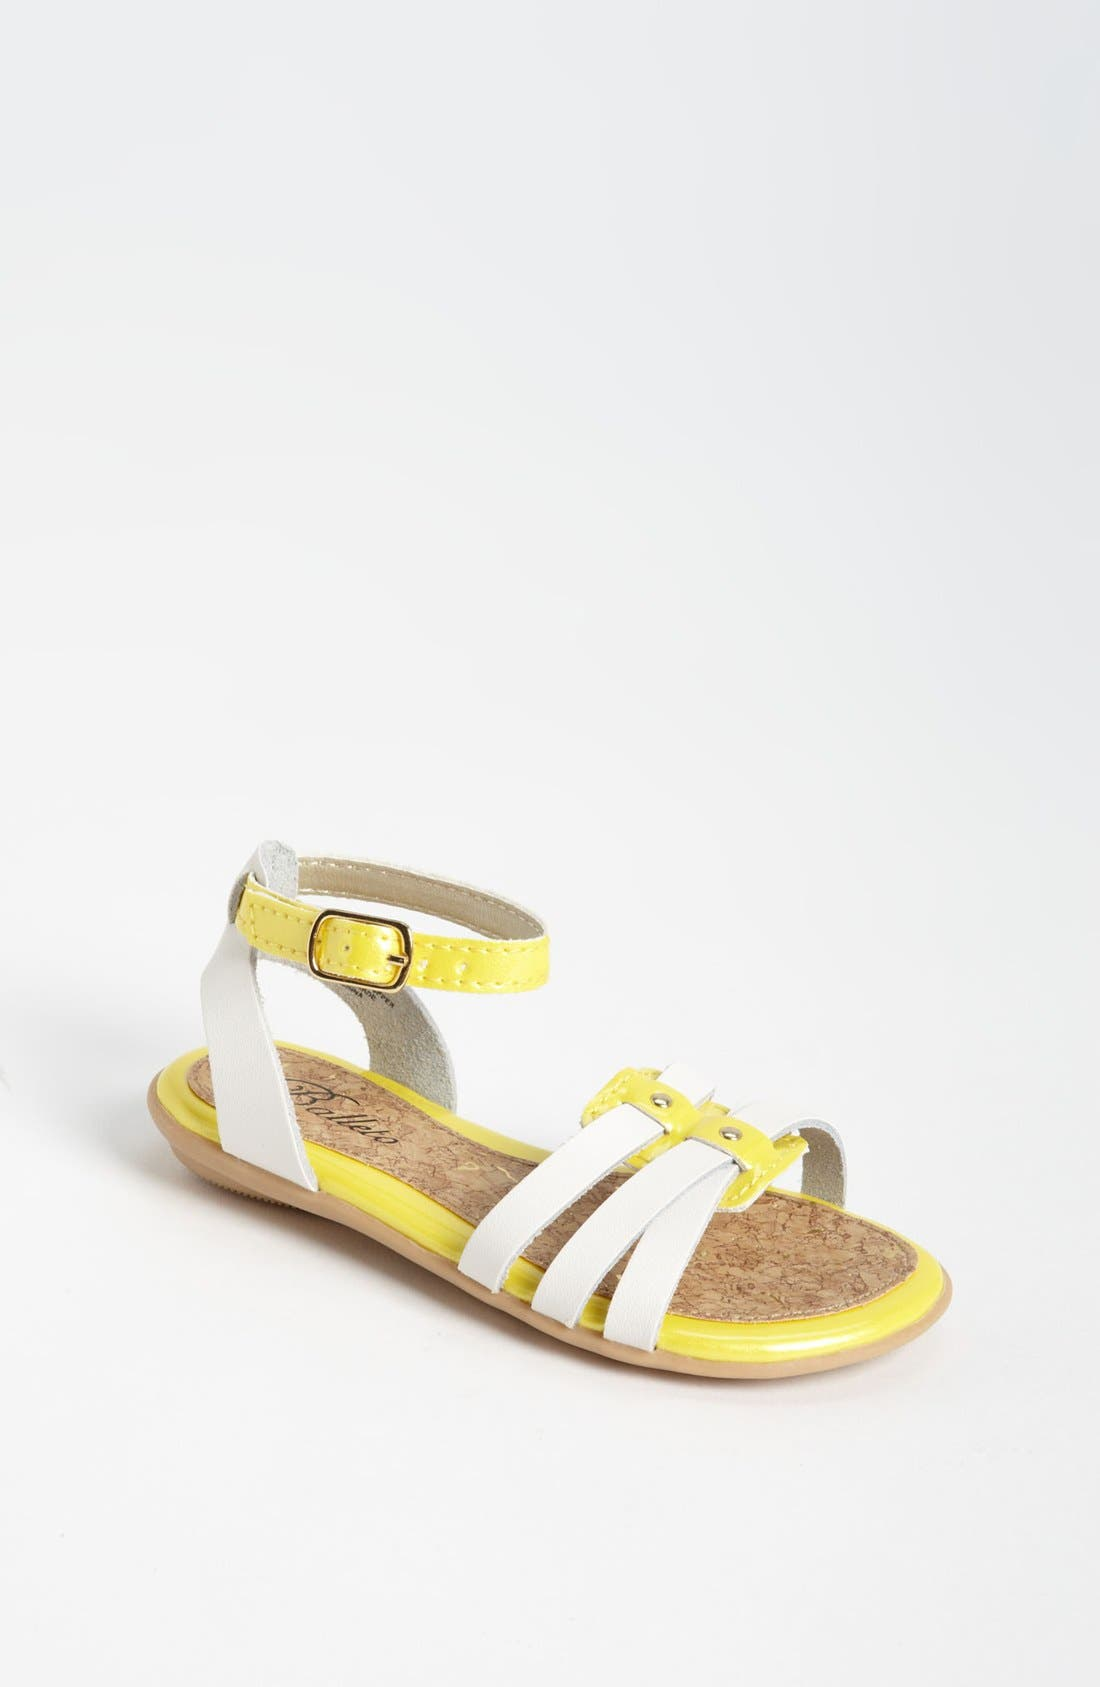 Main Image - Balleto 'Olivia' Sandal (Walker, Toddler, Little Kid & Big Kid)